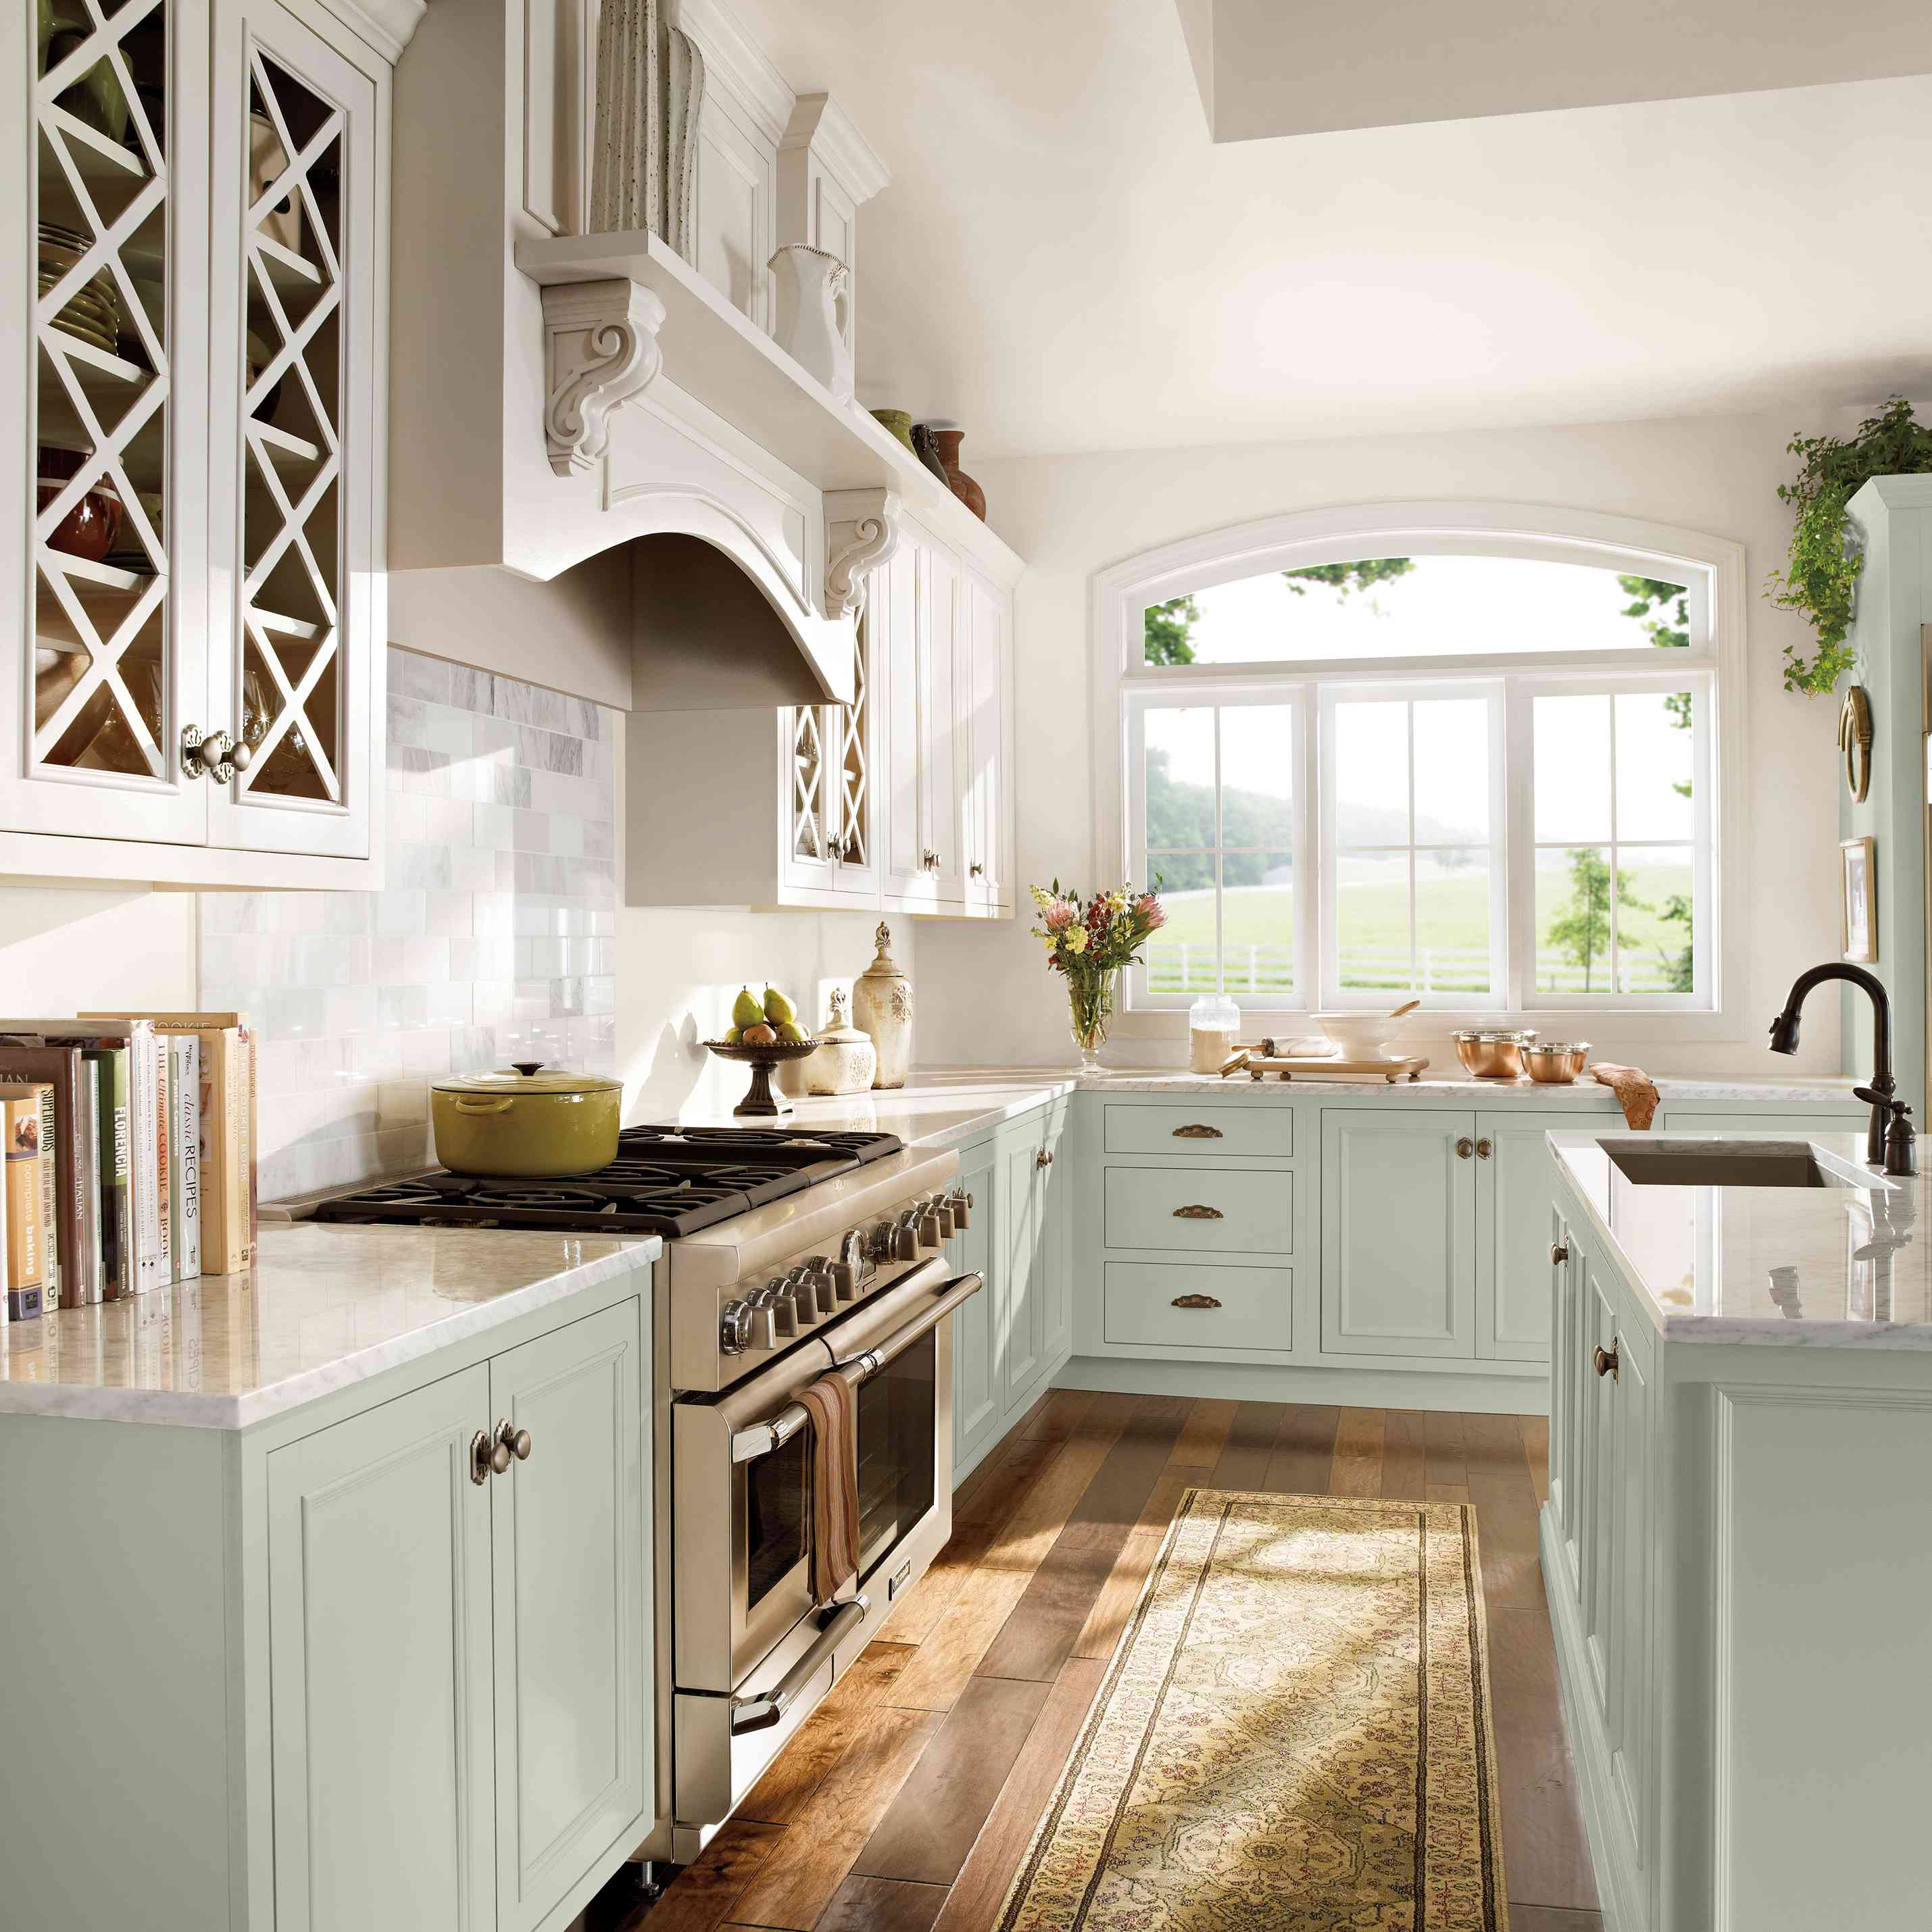 lower cabinets are a mint color in this traditional kitchen